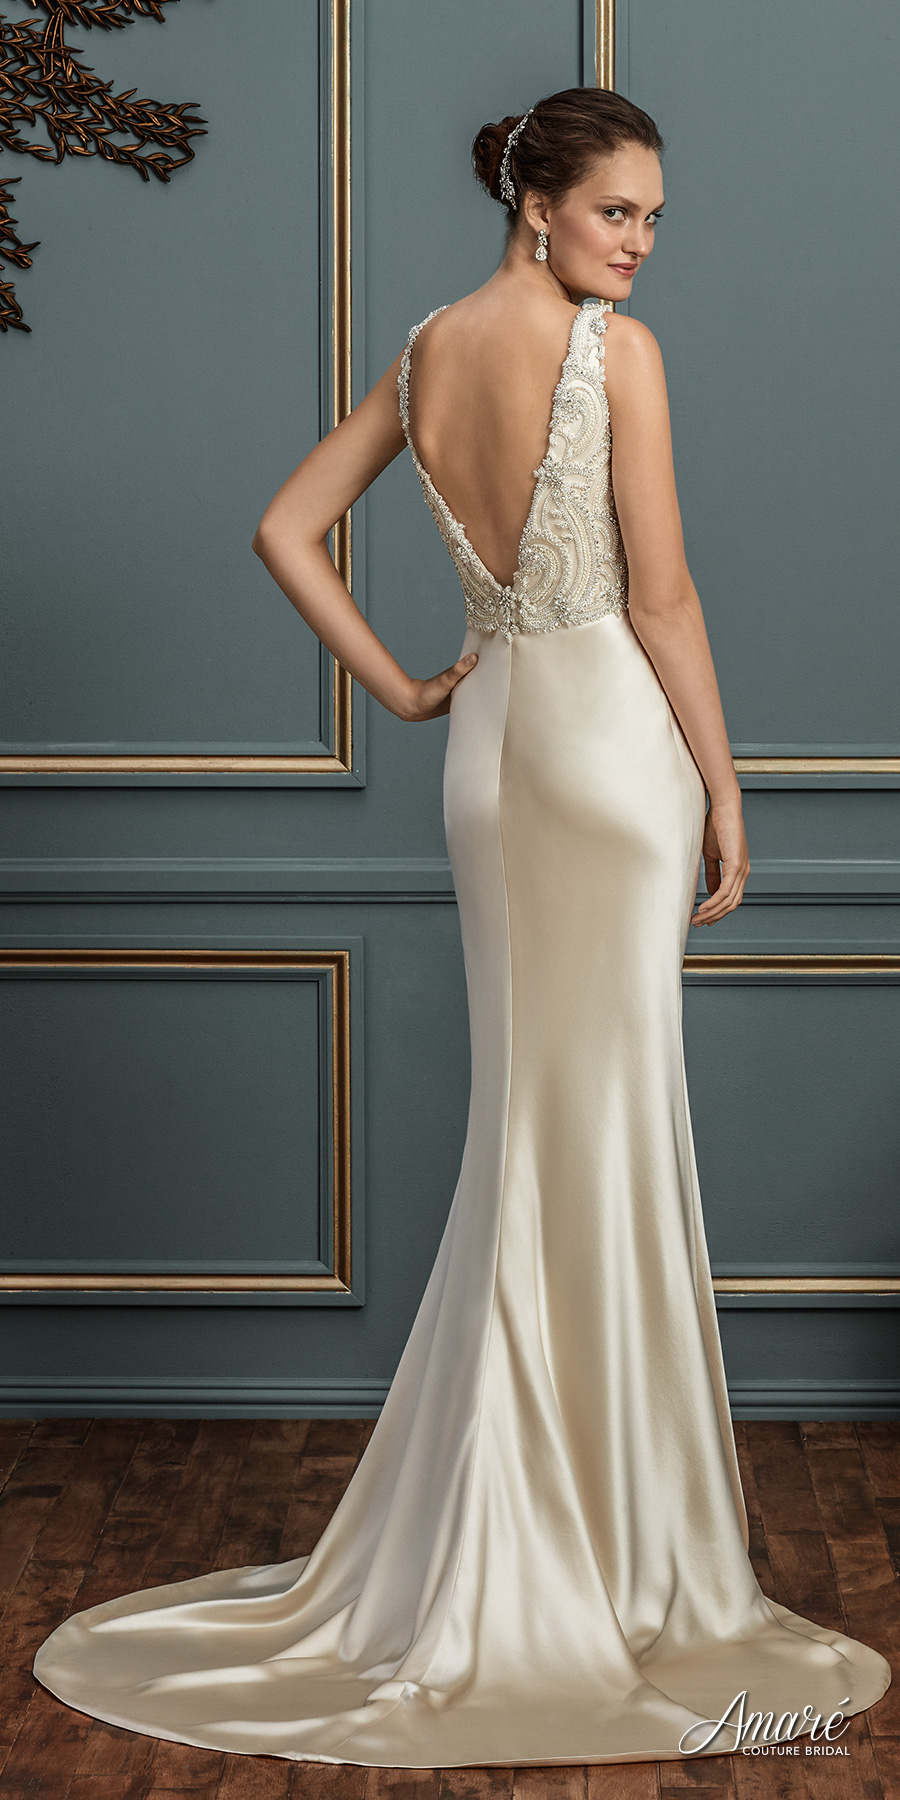 Petite Wedding Gown